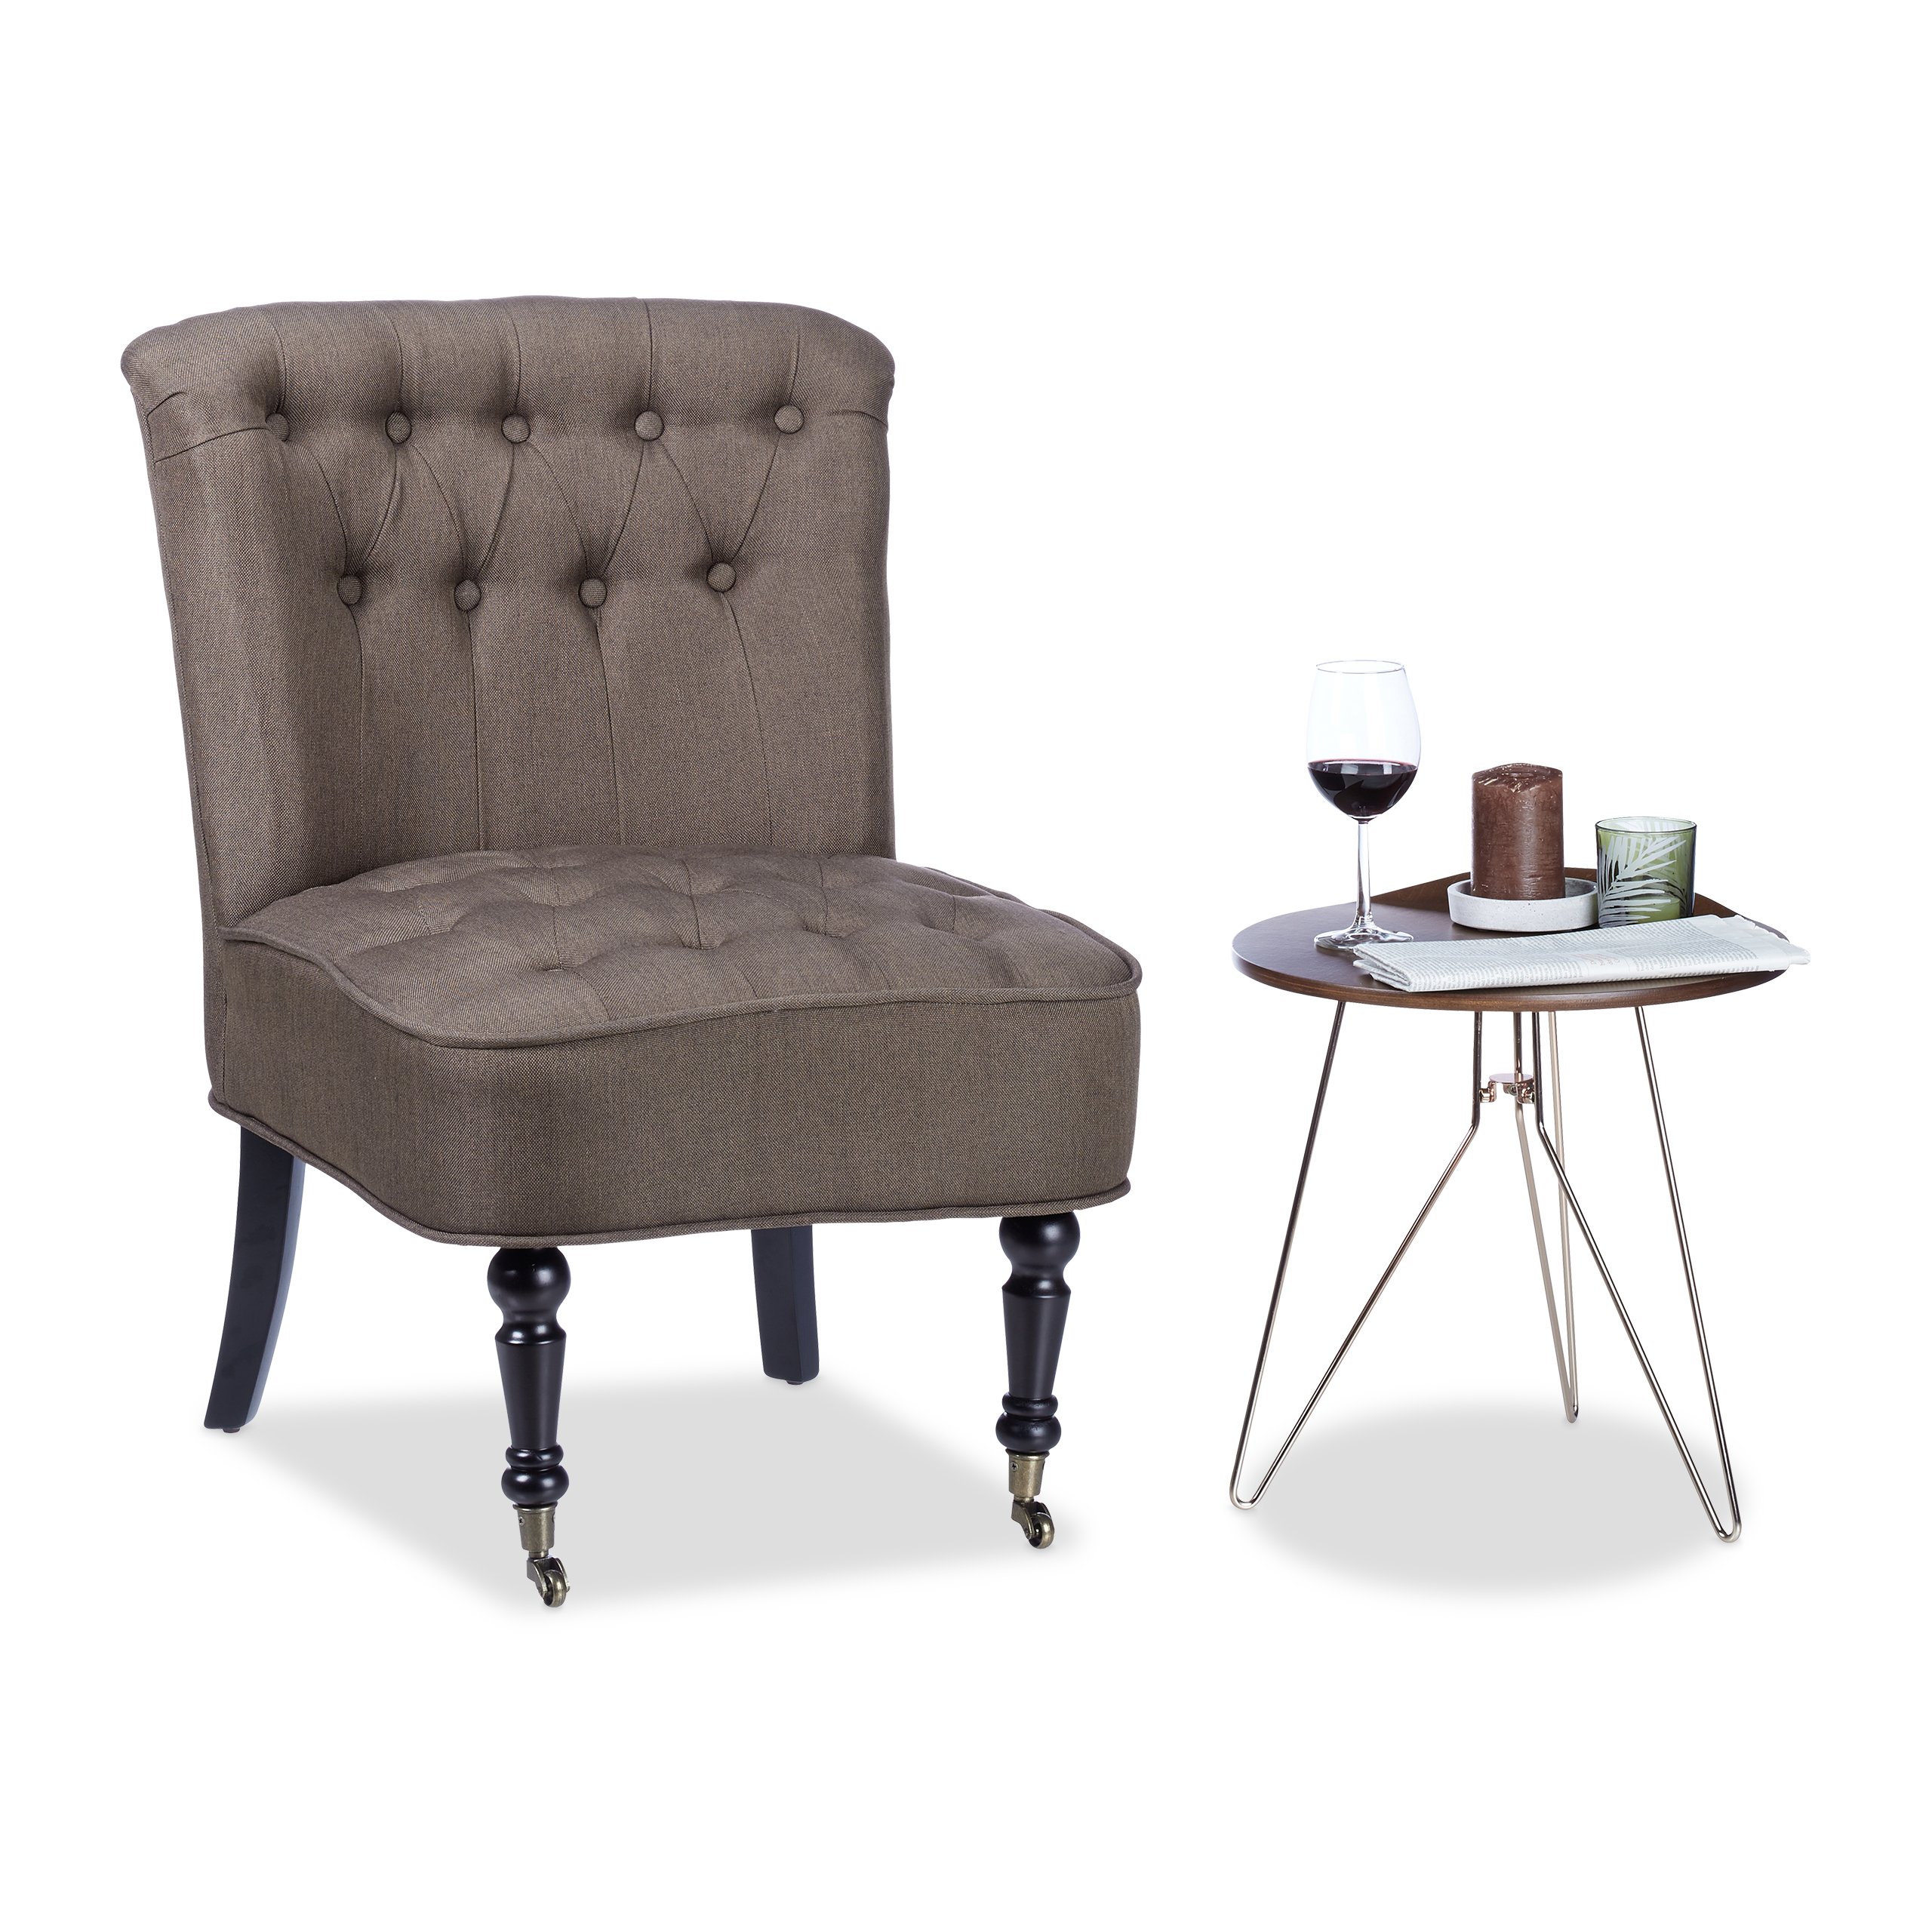 Sessel Tv Details Zu Cocktailsessel 50er Braun 2 Rollen Sessel Tv Sessel Ruhesessel Einsitzer